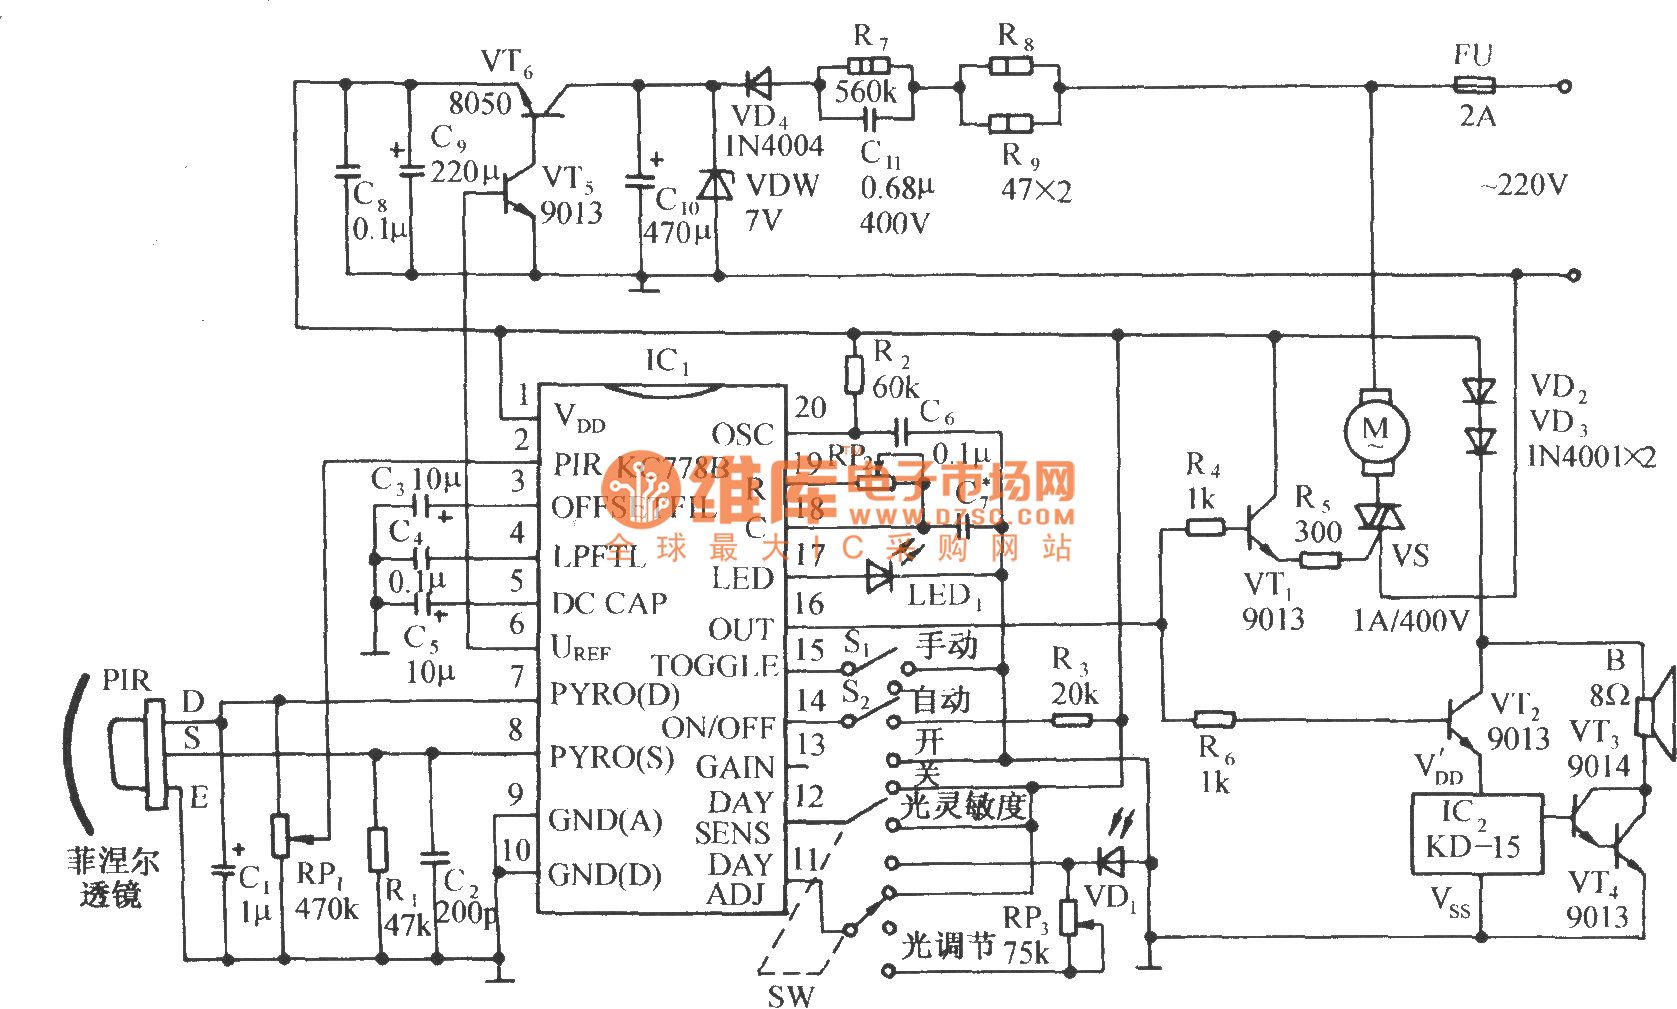 Infrared Sensing Automatic Door Control Circuit Diagram With Kc778b Threetonegenerator Signalprocessing Seekic